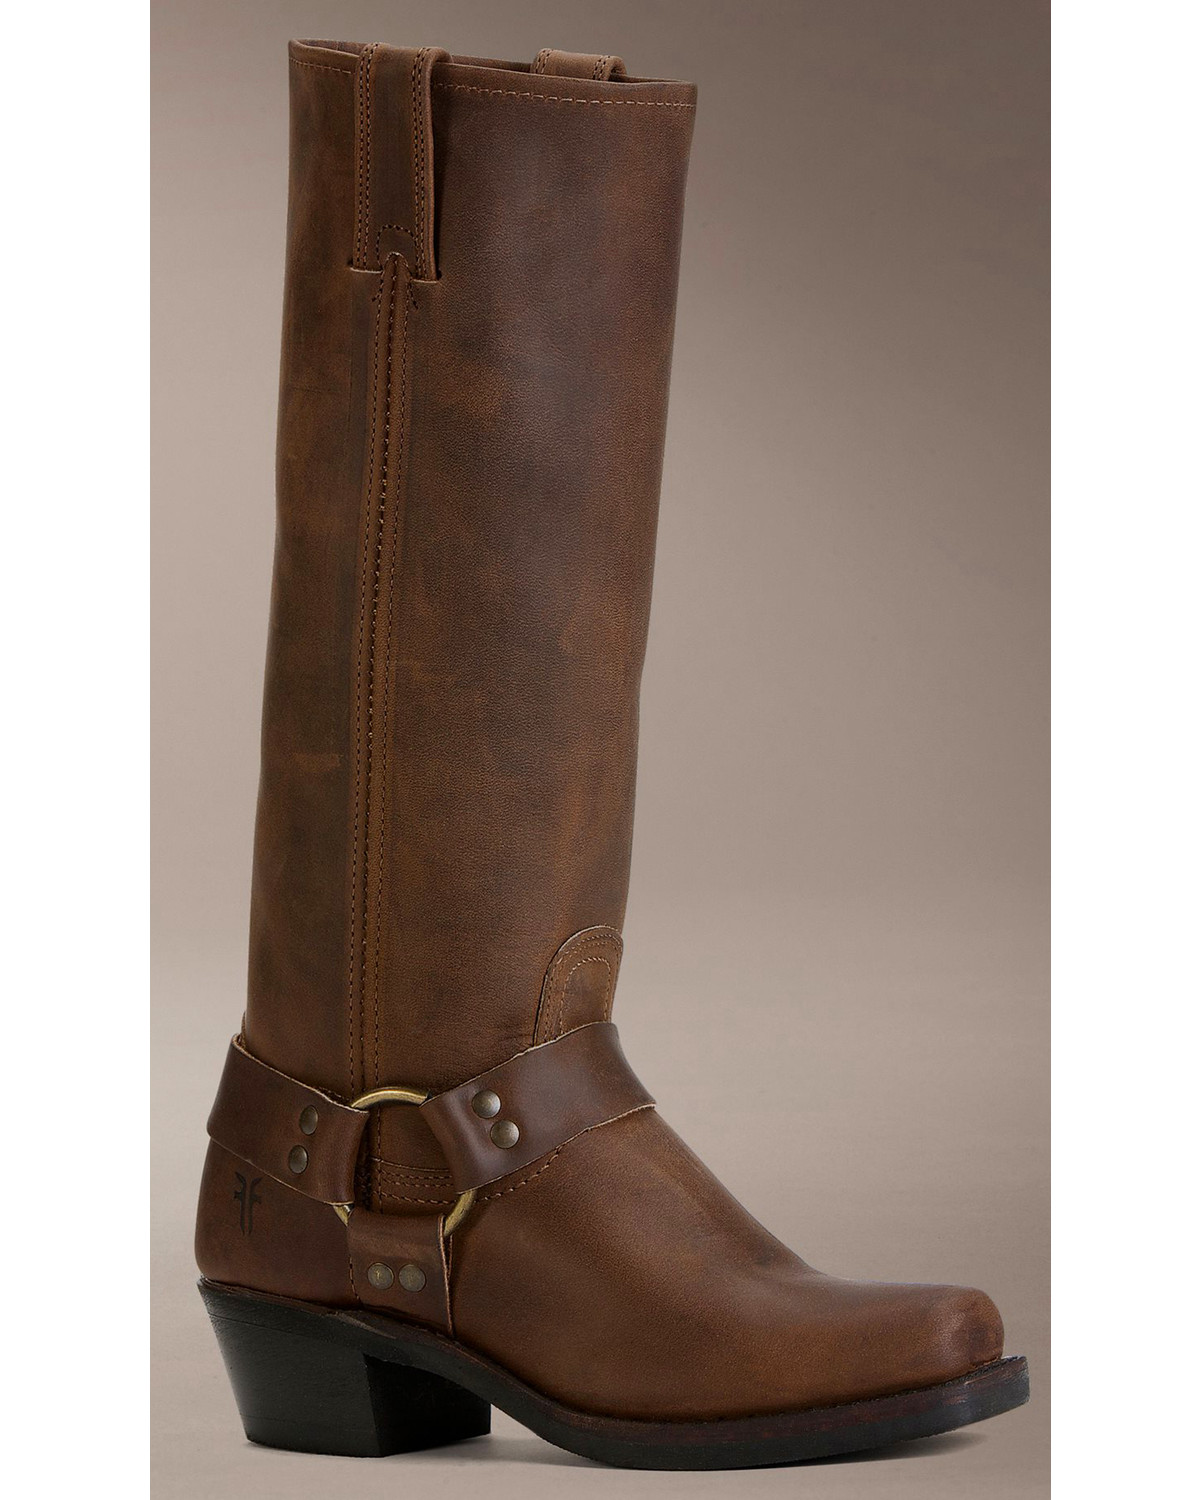 5fd43cf14 Frye Women s Harness 15R Riding Boots - Square Toe